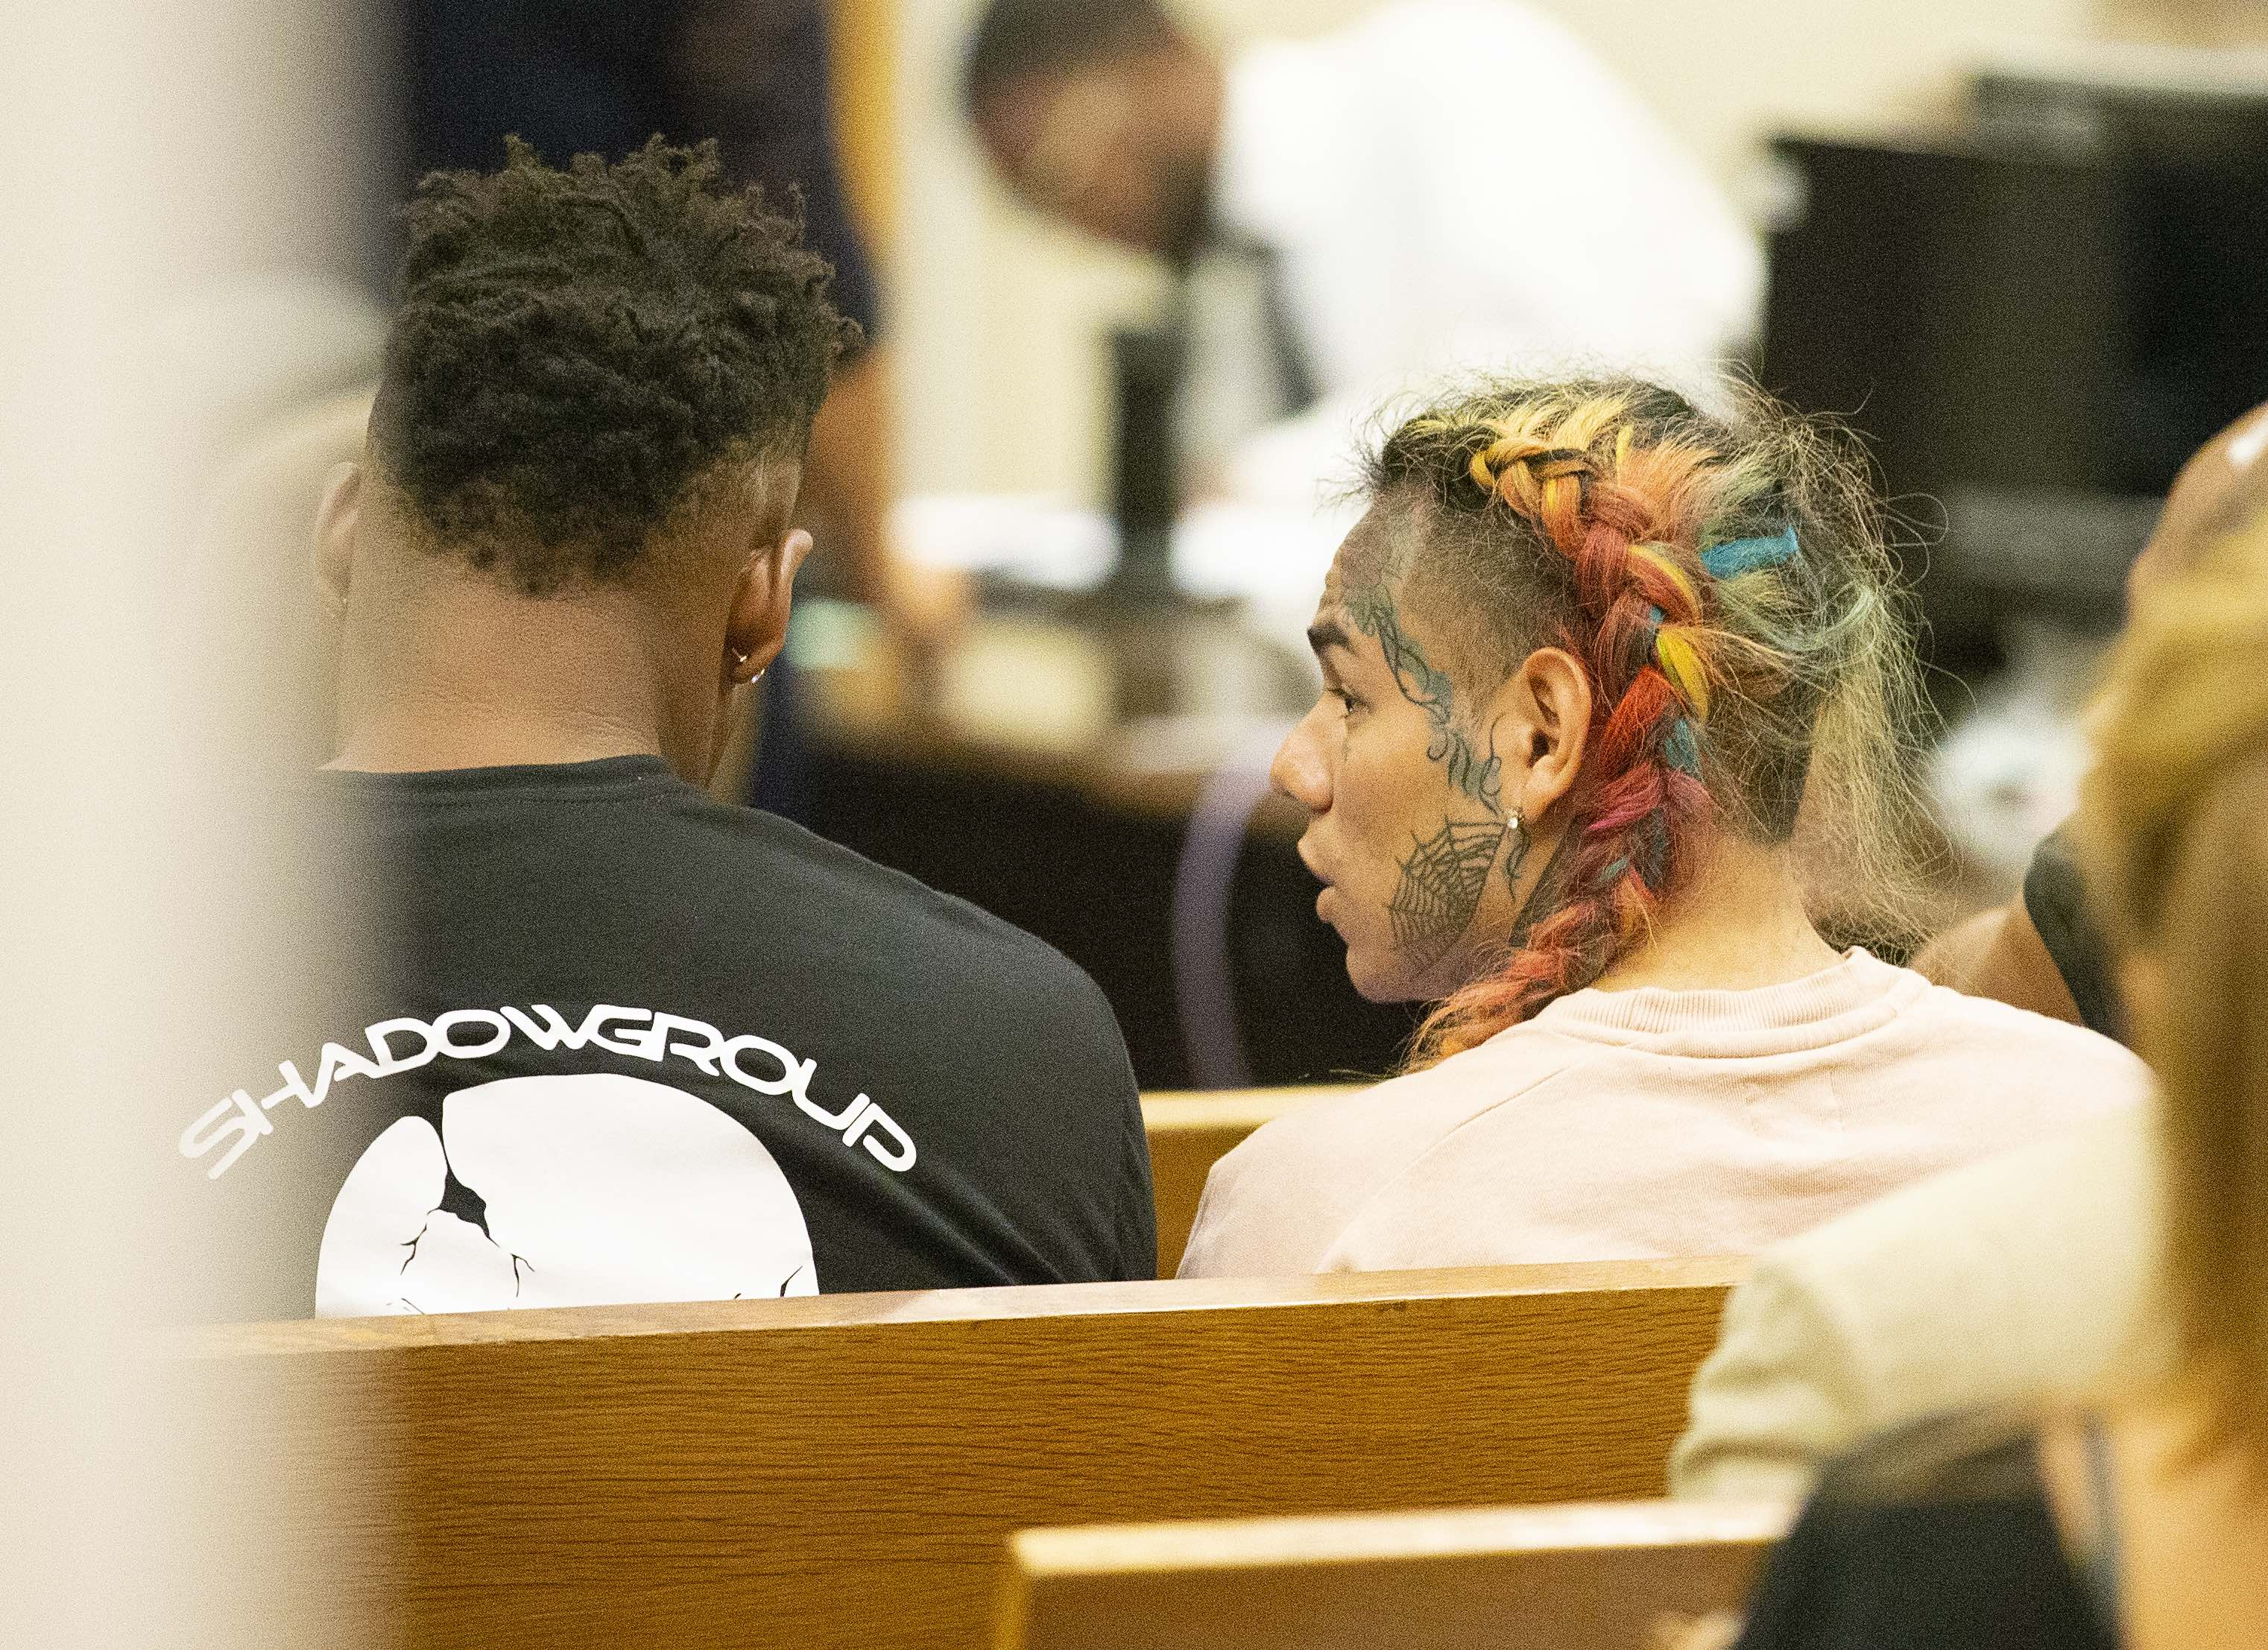 6ix9ine May Face Jail Time for Controversial Sexual Misconduct Case Following Re-Sentencing